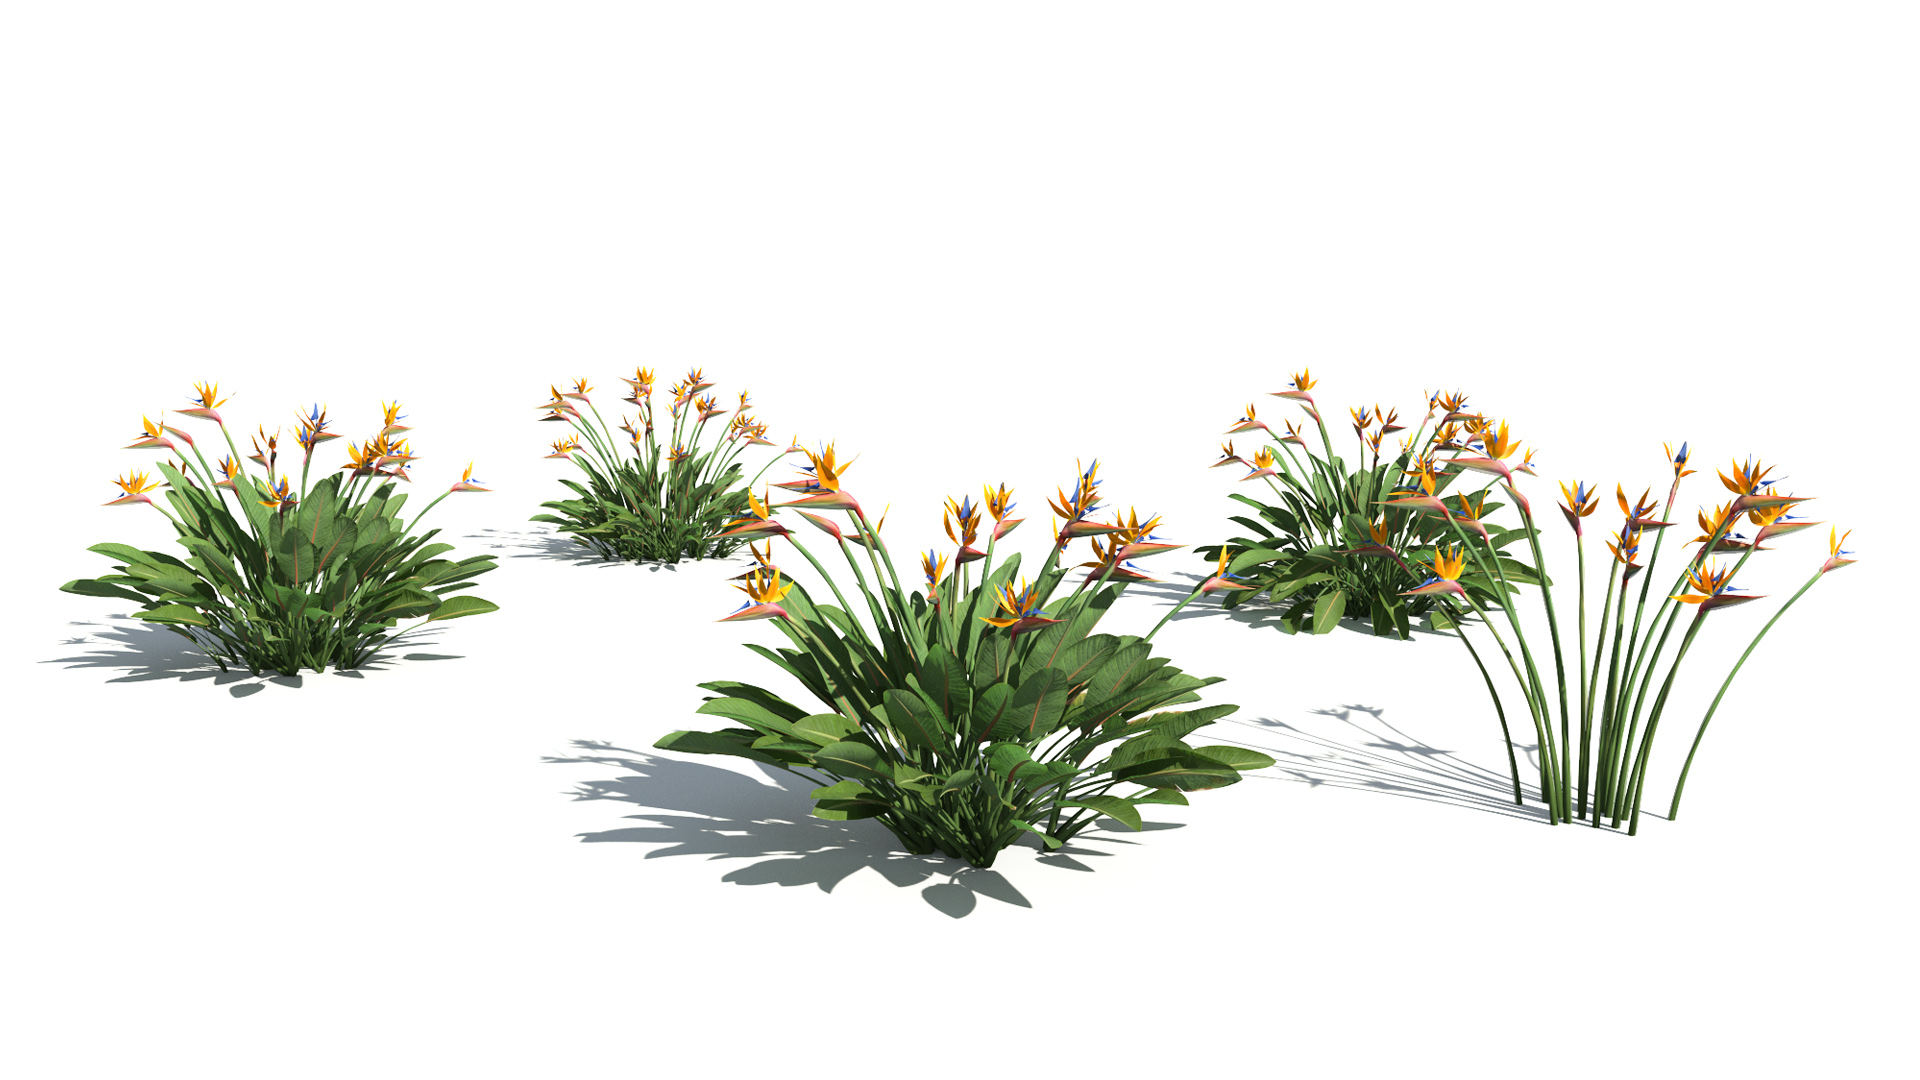 3D model of the Narrow leaved bird of paradise Strelitzia juncea published parameters